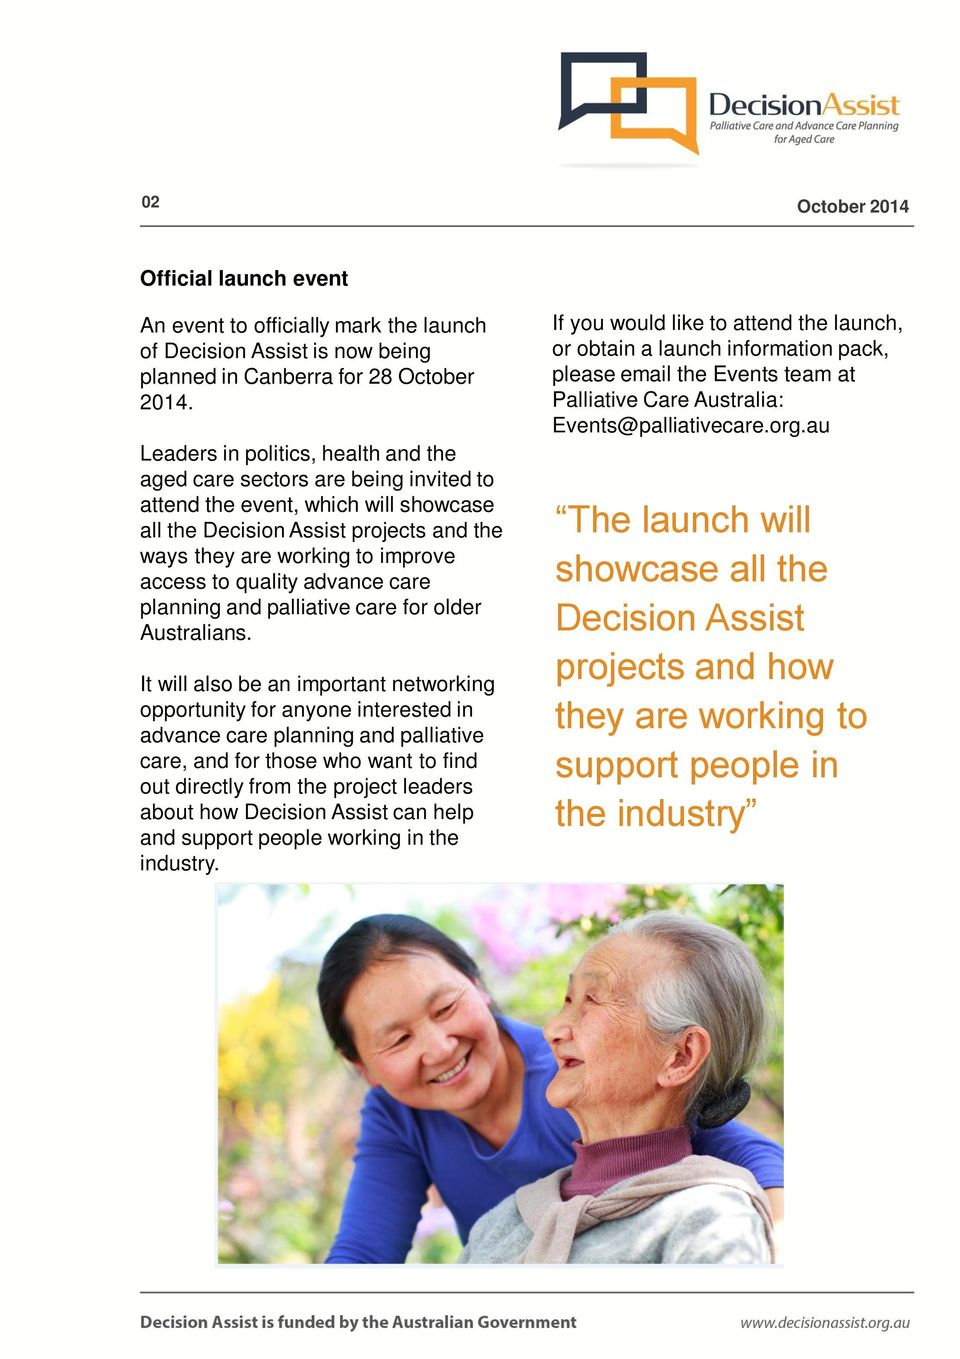 quality advance care planning and palliative care for older Australians.